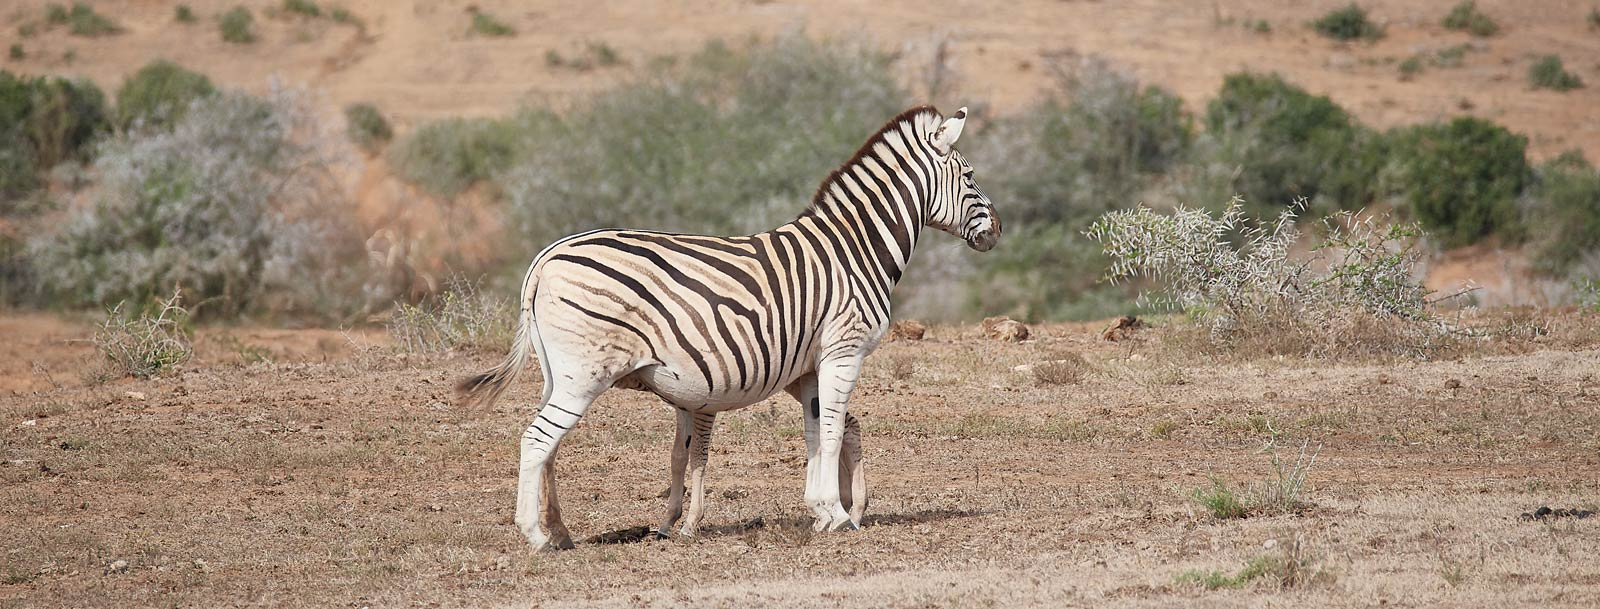 dazzle camouflage a zebra and its young showing the long-legged young that helps it hide behind its parent